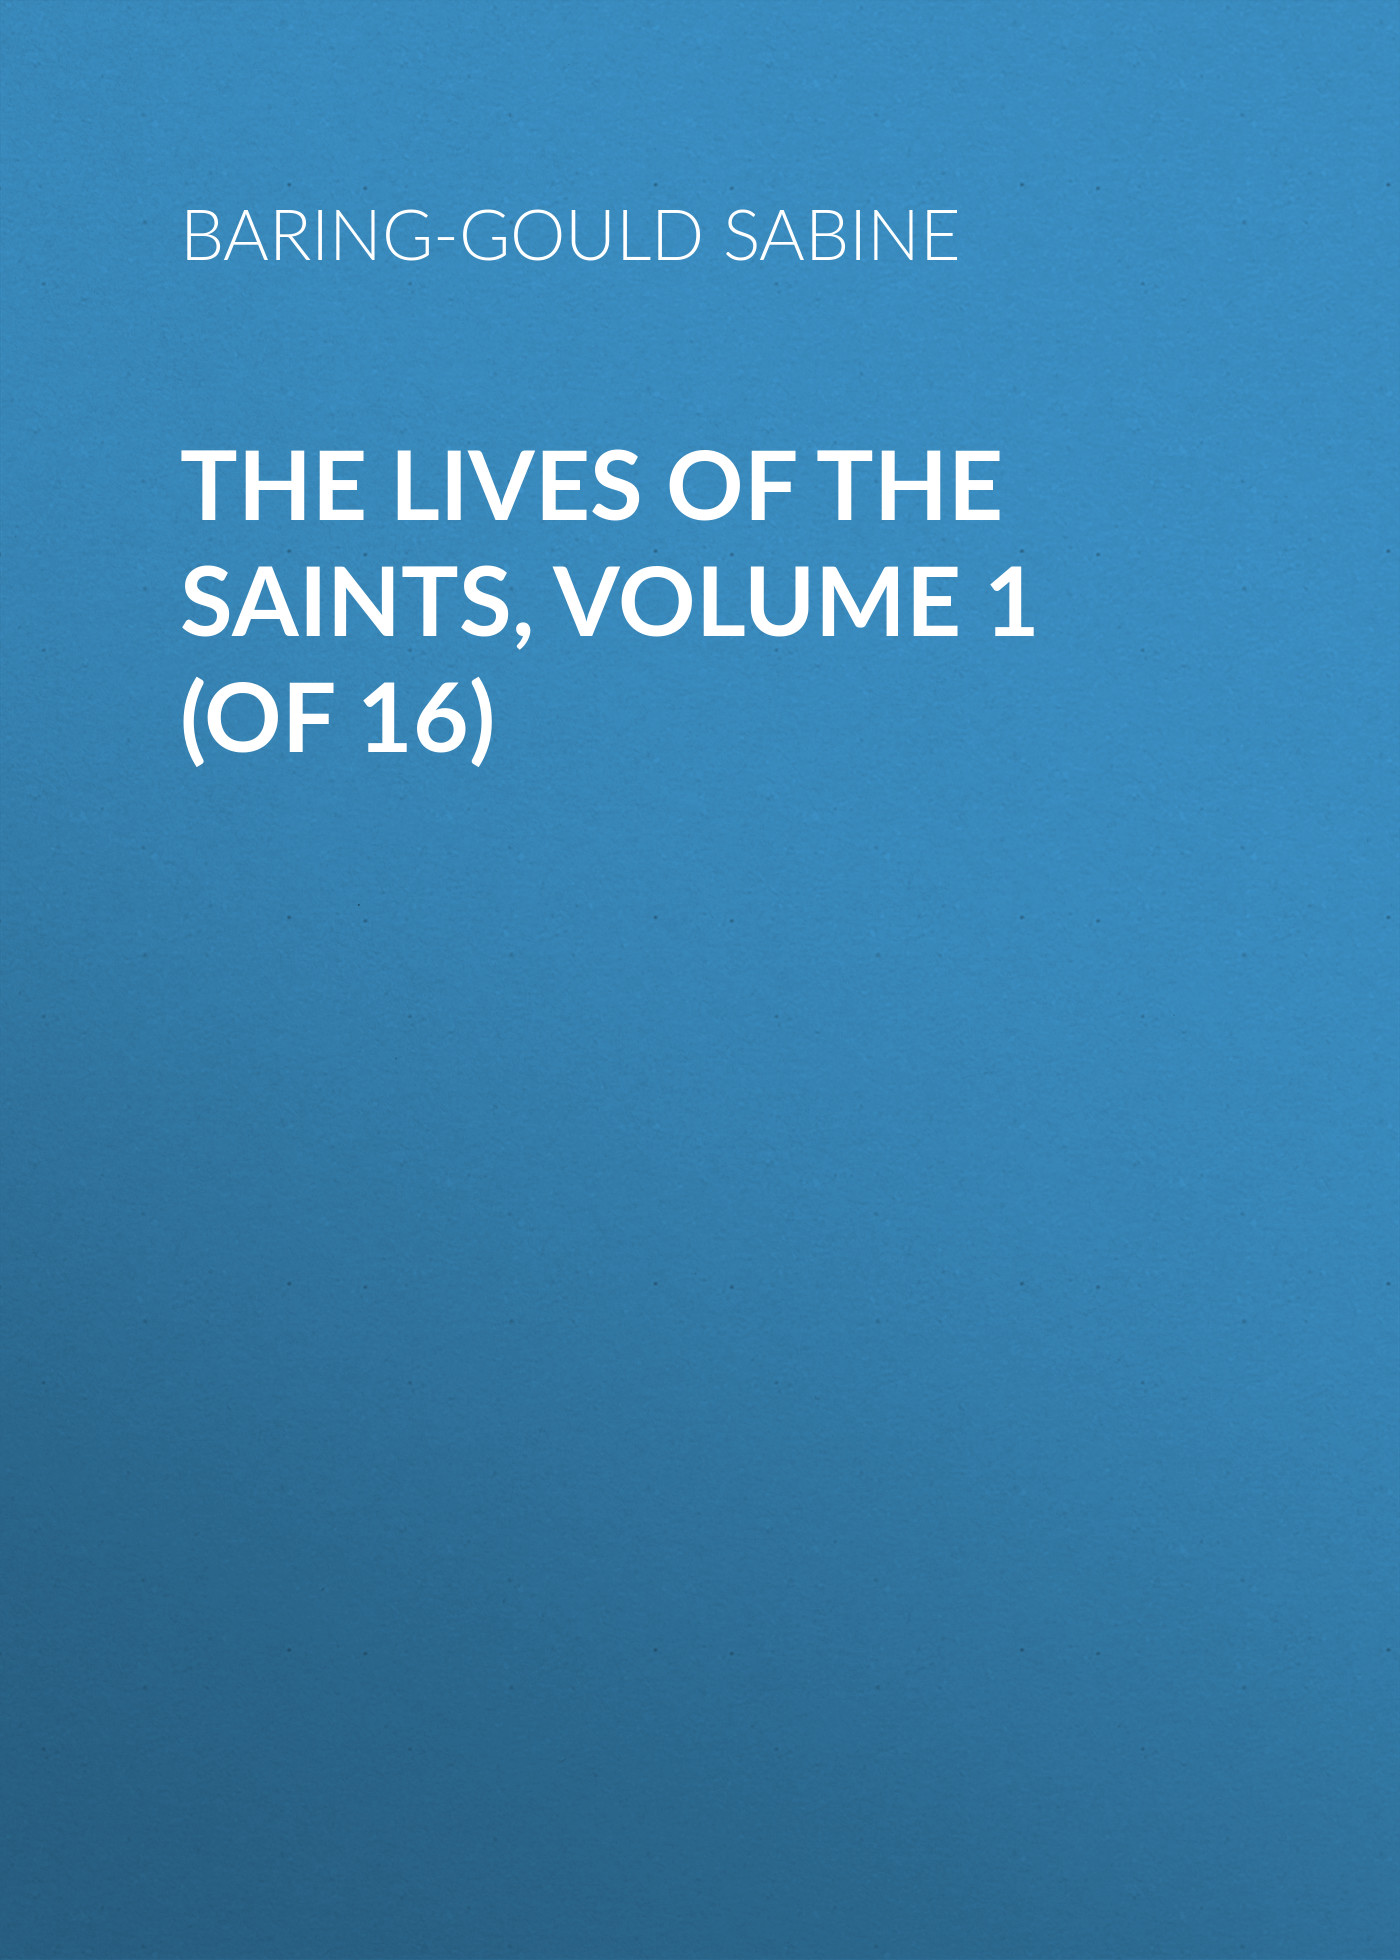 Baring-Gould Sabine The Lives of the Saints, Volume 1 (of 16) trent haley expansion the secrets of the soul volume 1